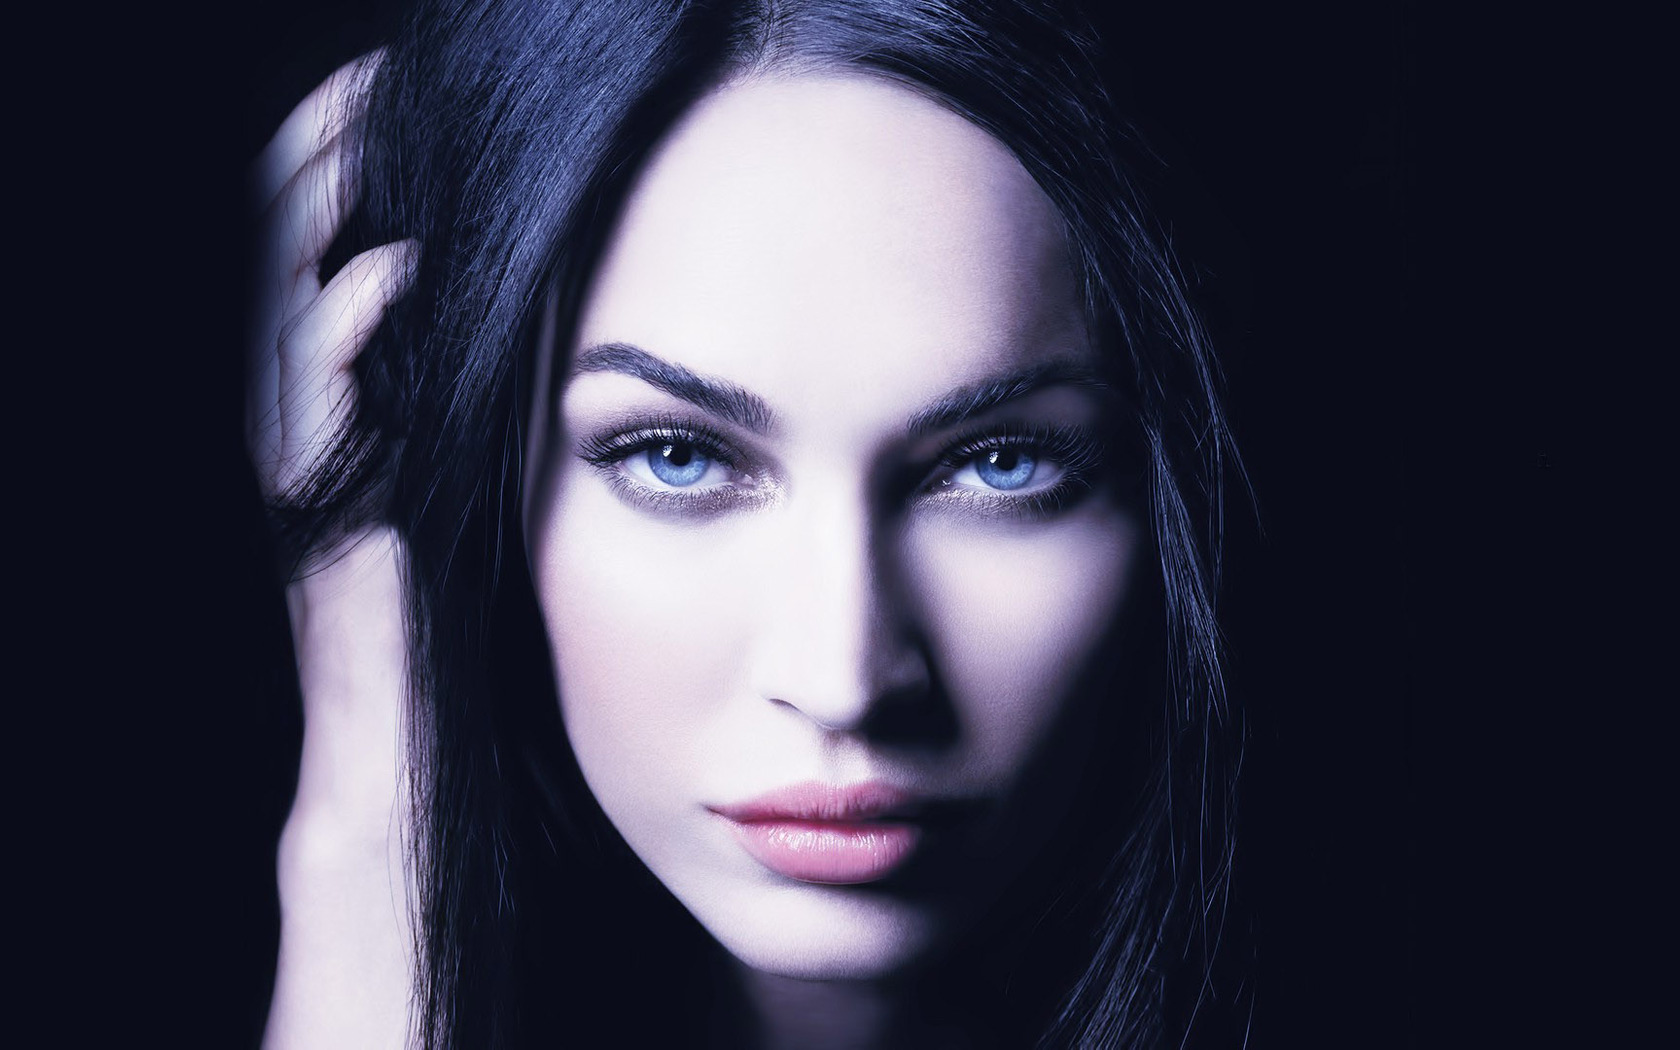 Megan Fox wallpaper 4860 1680x1050